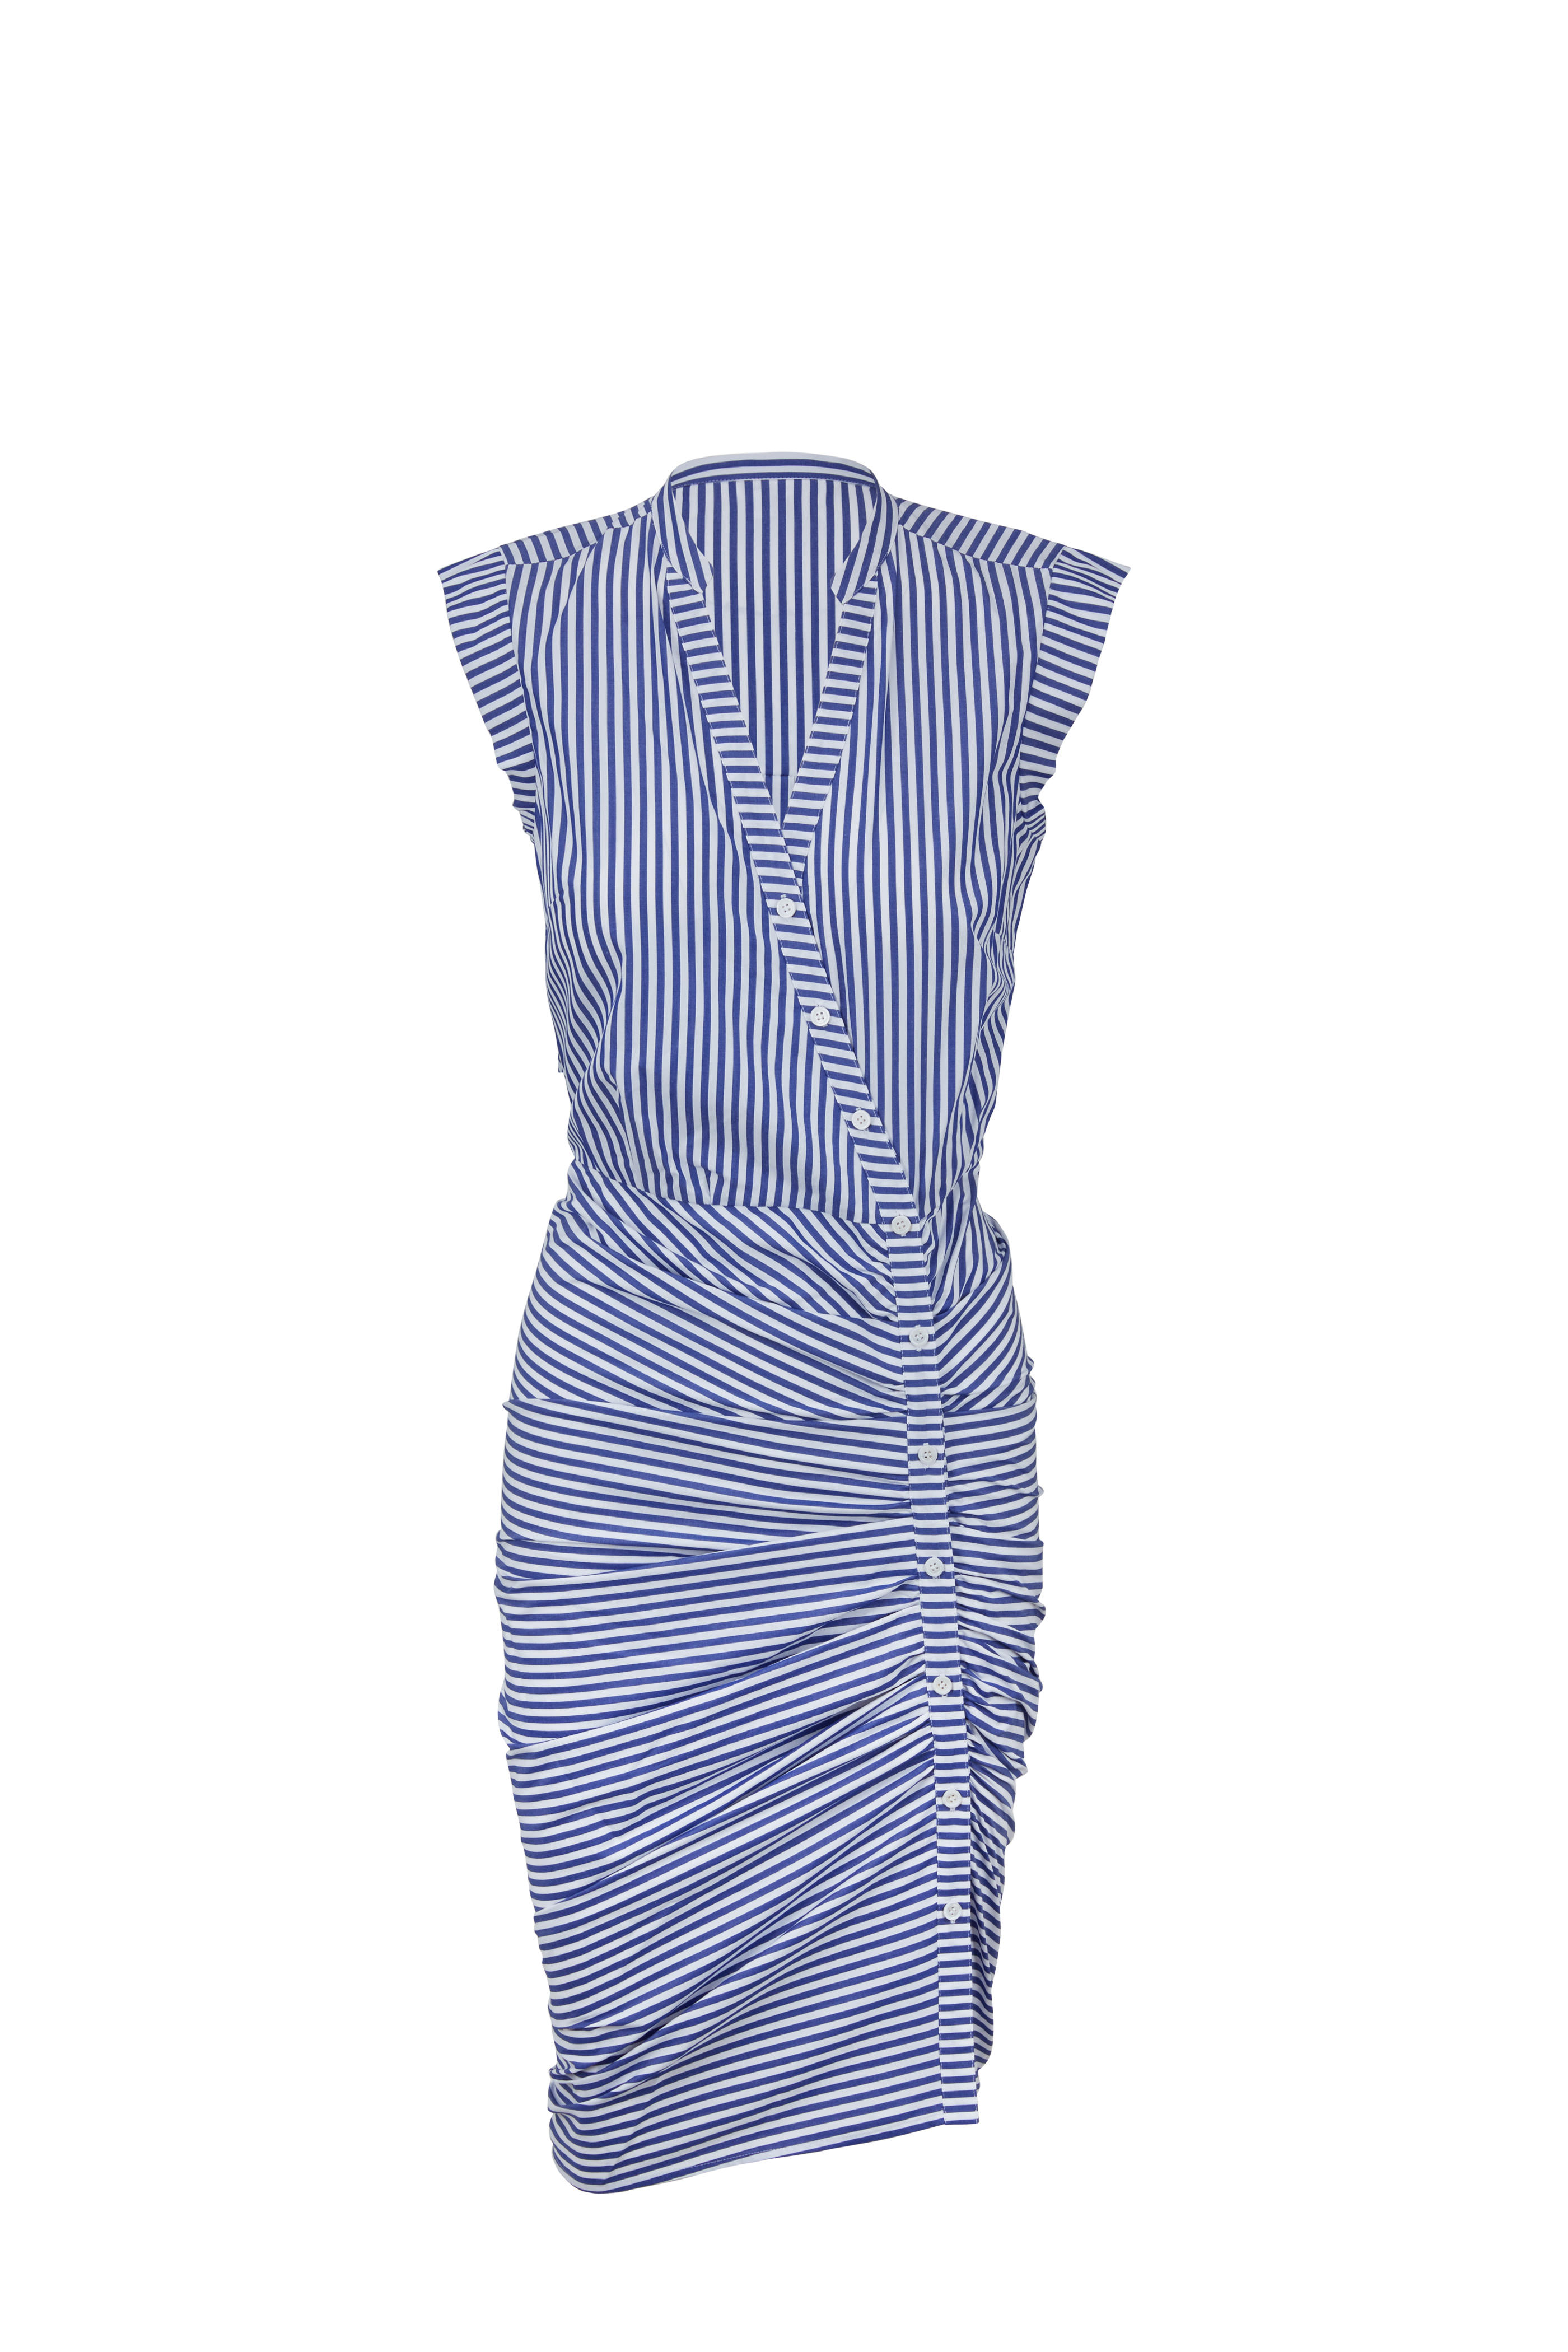 Veronica Beard Blue White Striped Ruched Shirtdress Mitchell